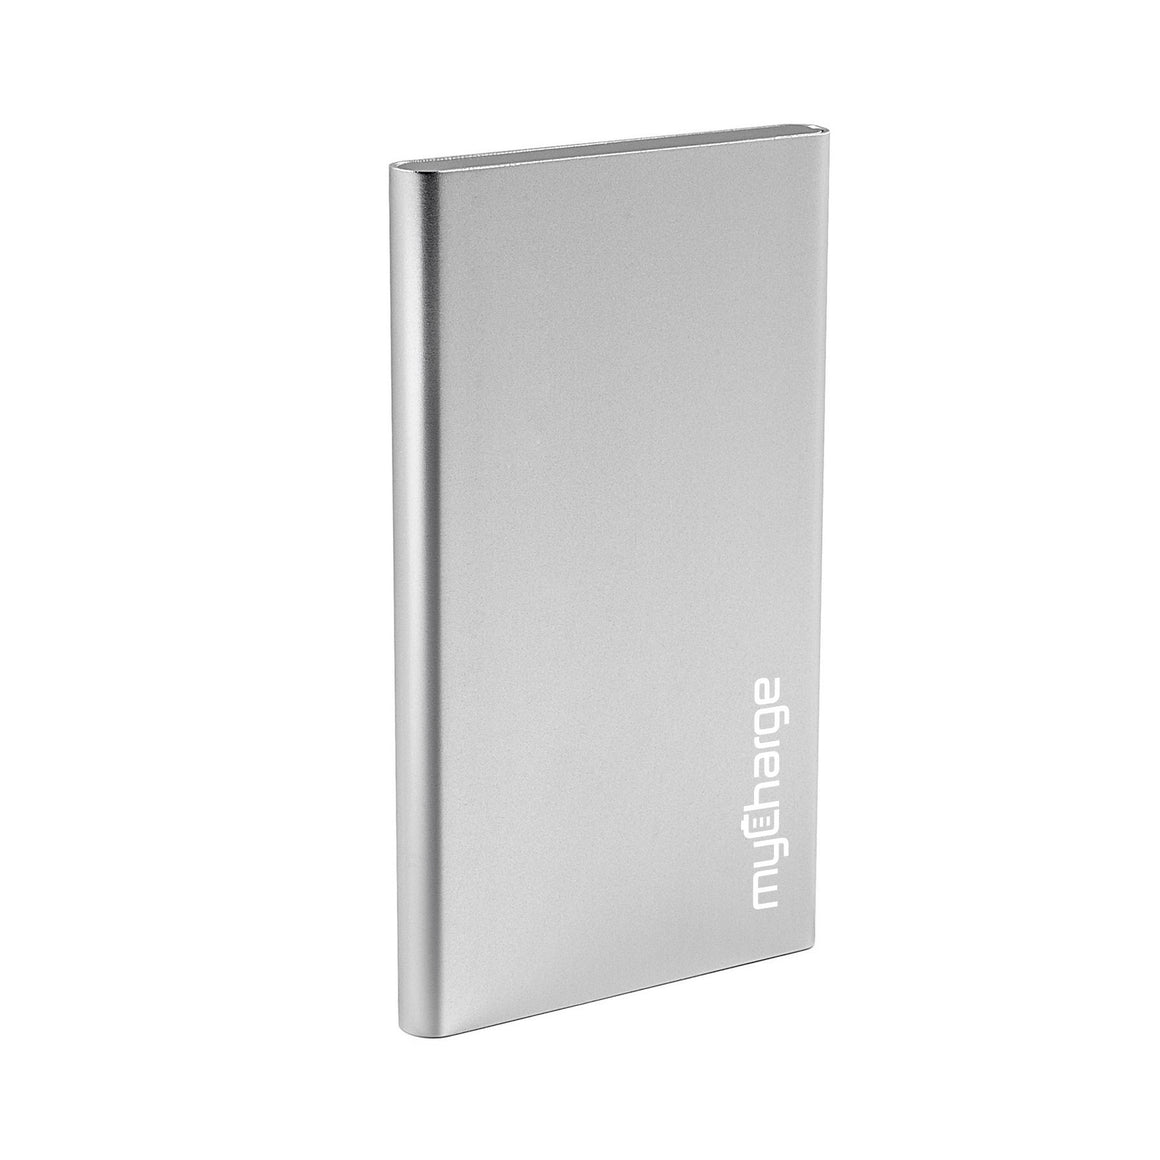 myCharge RazorPlus 3000mAh portable battery charger side